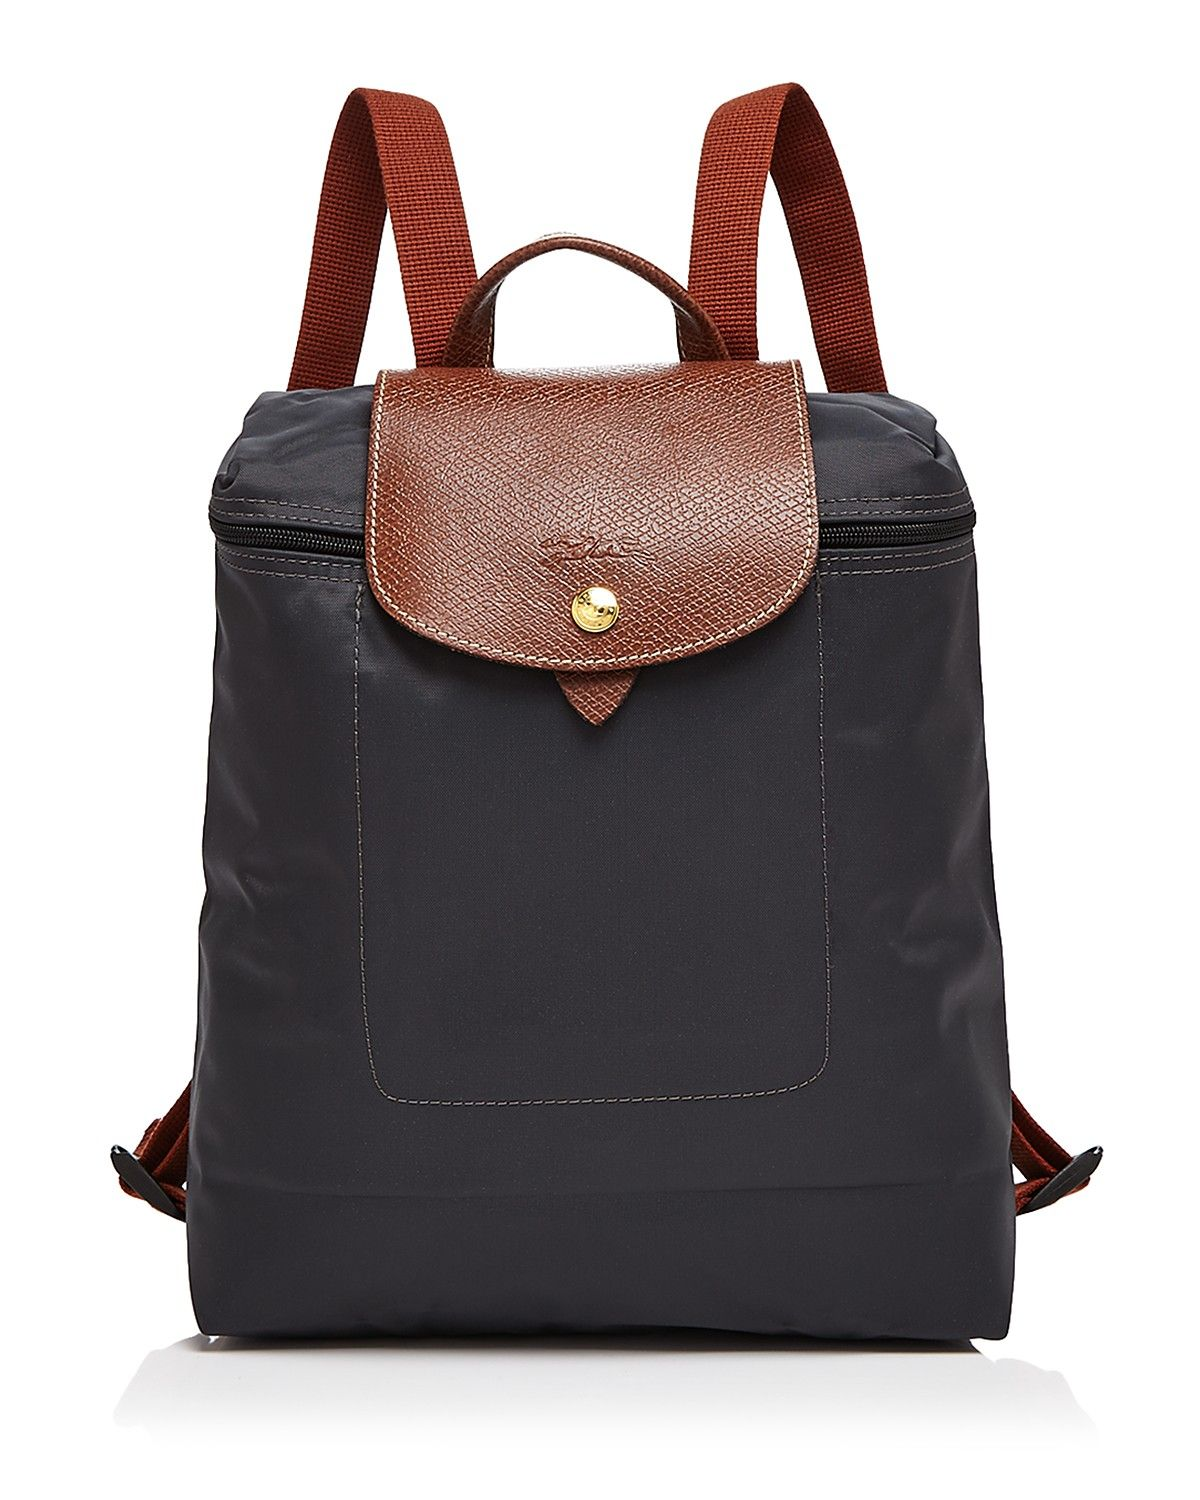 Longchamp Backpack - Le Pliage  d4f9e7bcee2a1